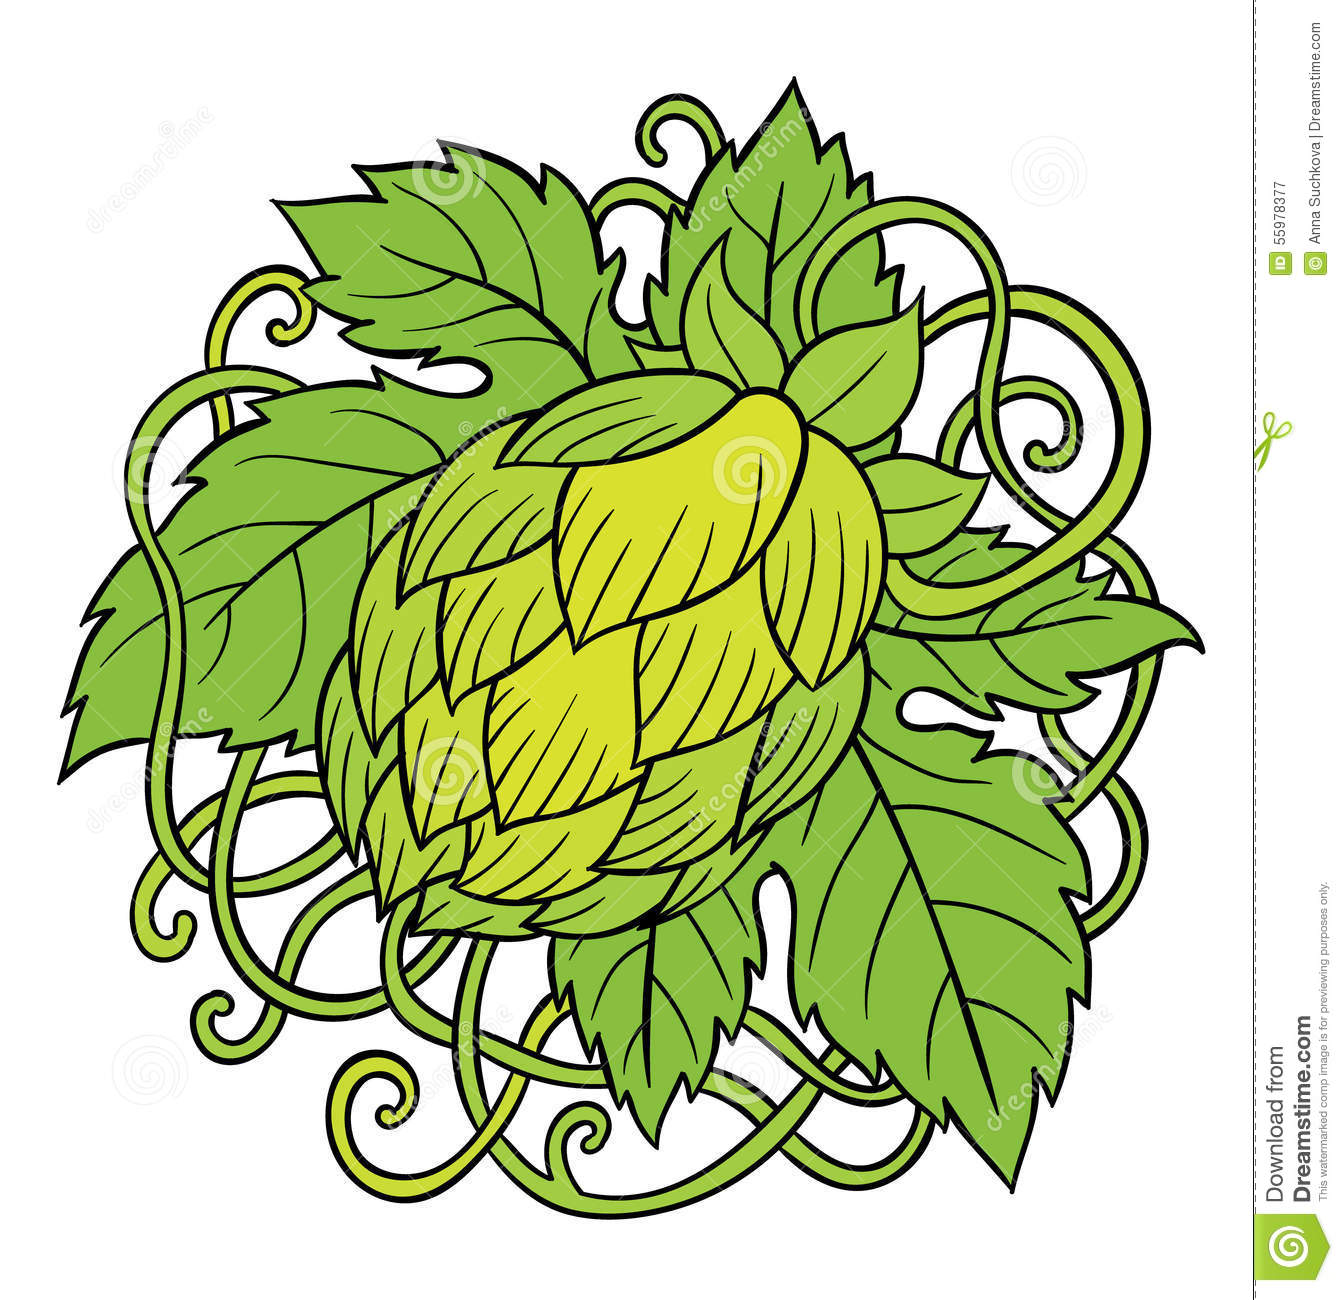 Stock Illustration Hops Vector Visual Graphic Icons Design Logos Ideal Beer Stout Ale Lager Bitter Labels Packaging Image55978377 besides Creating Garden Plan likewise Beautiful Diy Pallet Indoor Bar And Wine Rack additionally Amazing Home Interior Design Ideas moreover Flower Tire Planter Ideas. on design herb garden